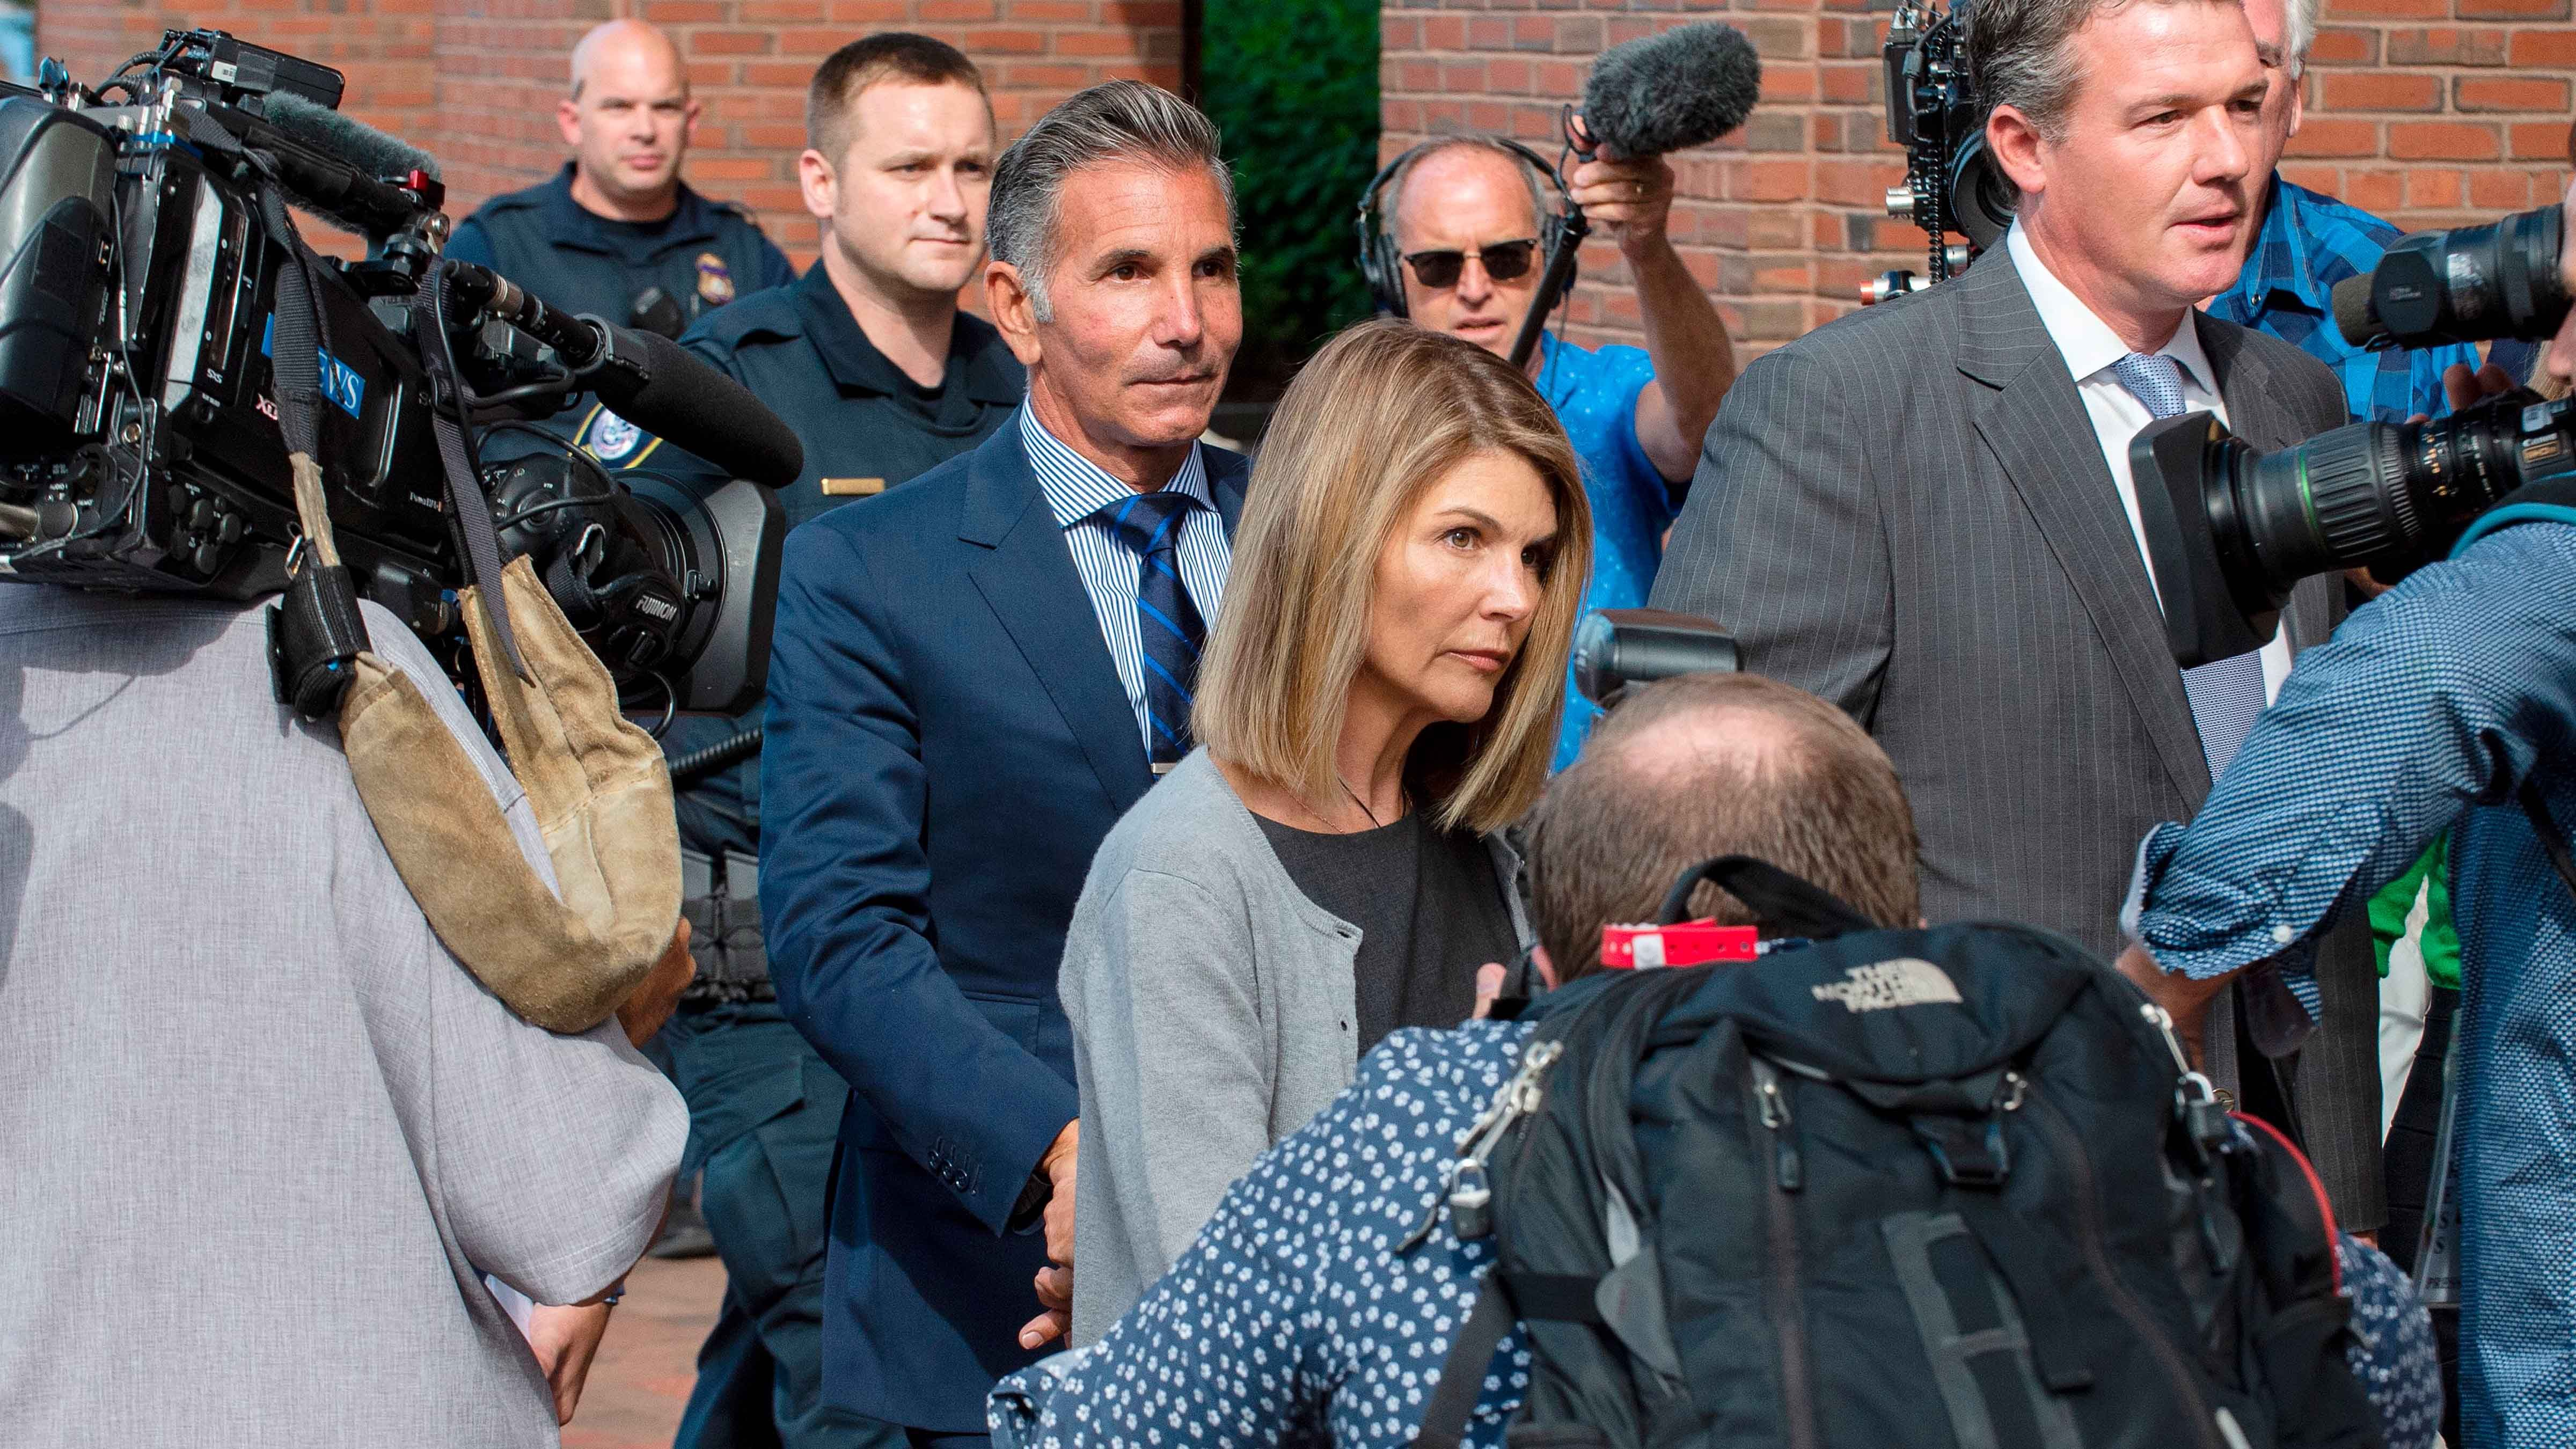 """Lori Loughlin and Mossimo Giannulli Thought Going to Trial Would Be """"Reckless"""" at This Point"""